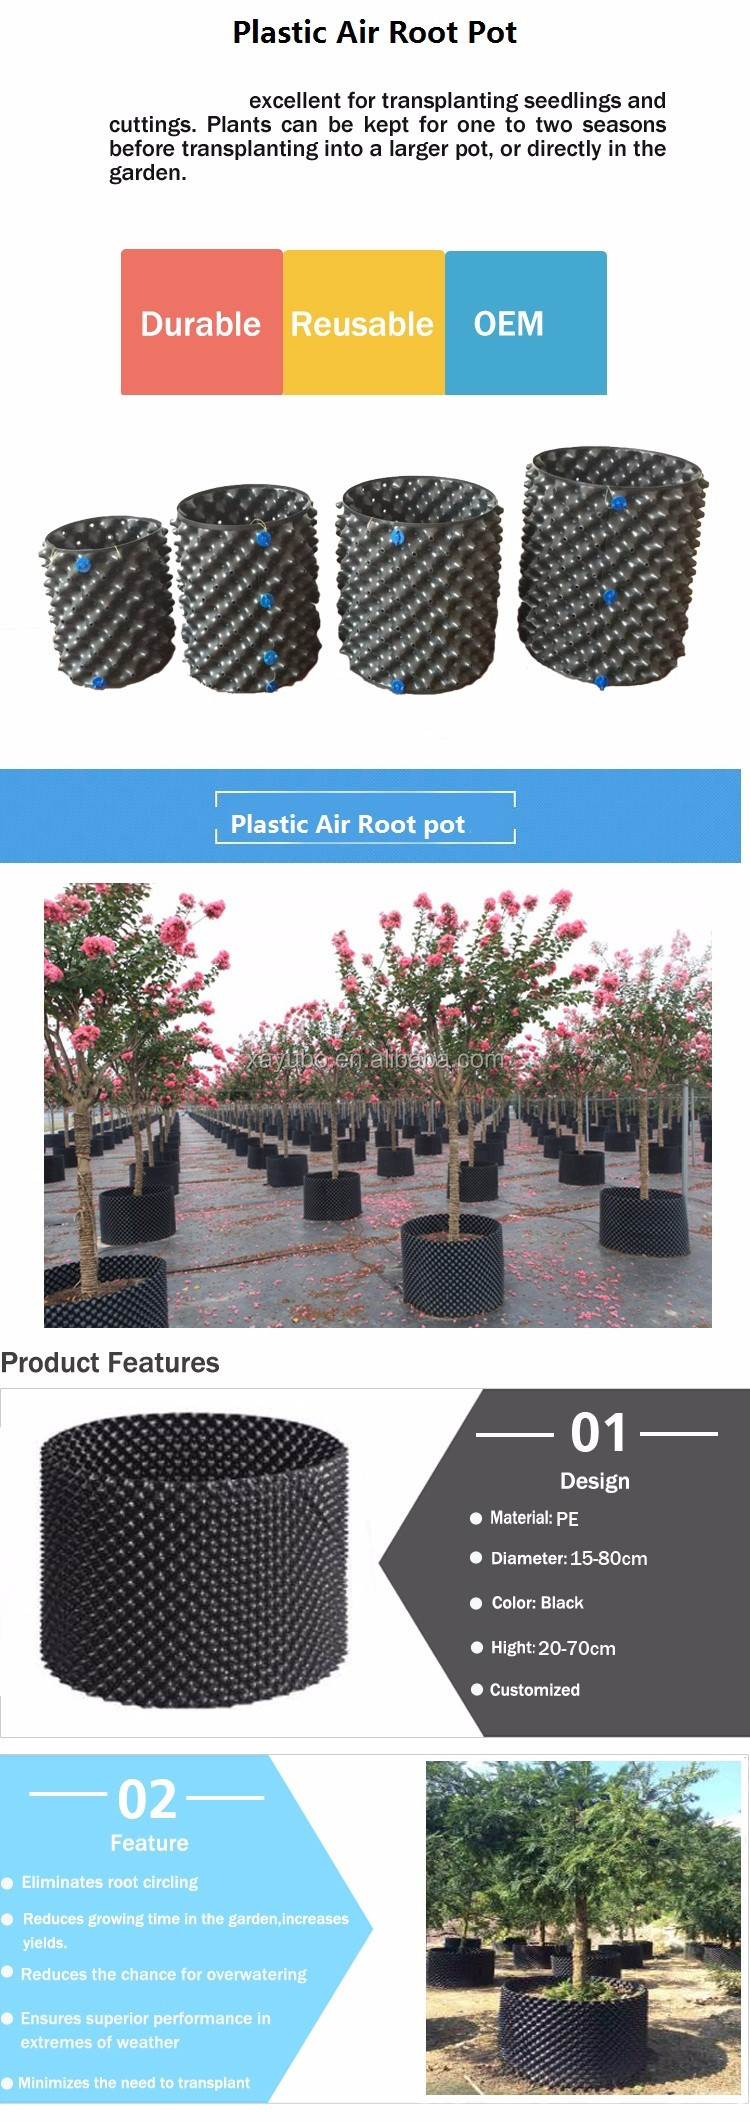 New arrival tree air pruning pot with base, root growing control container for nursery plants